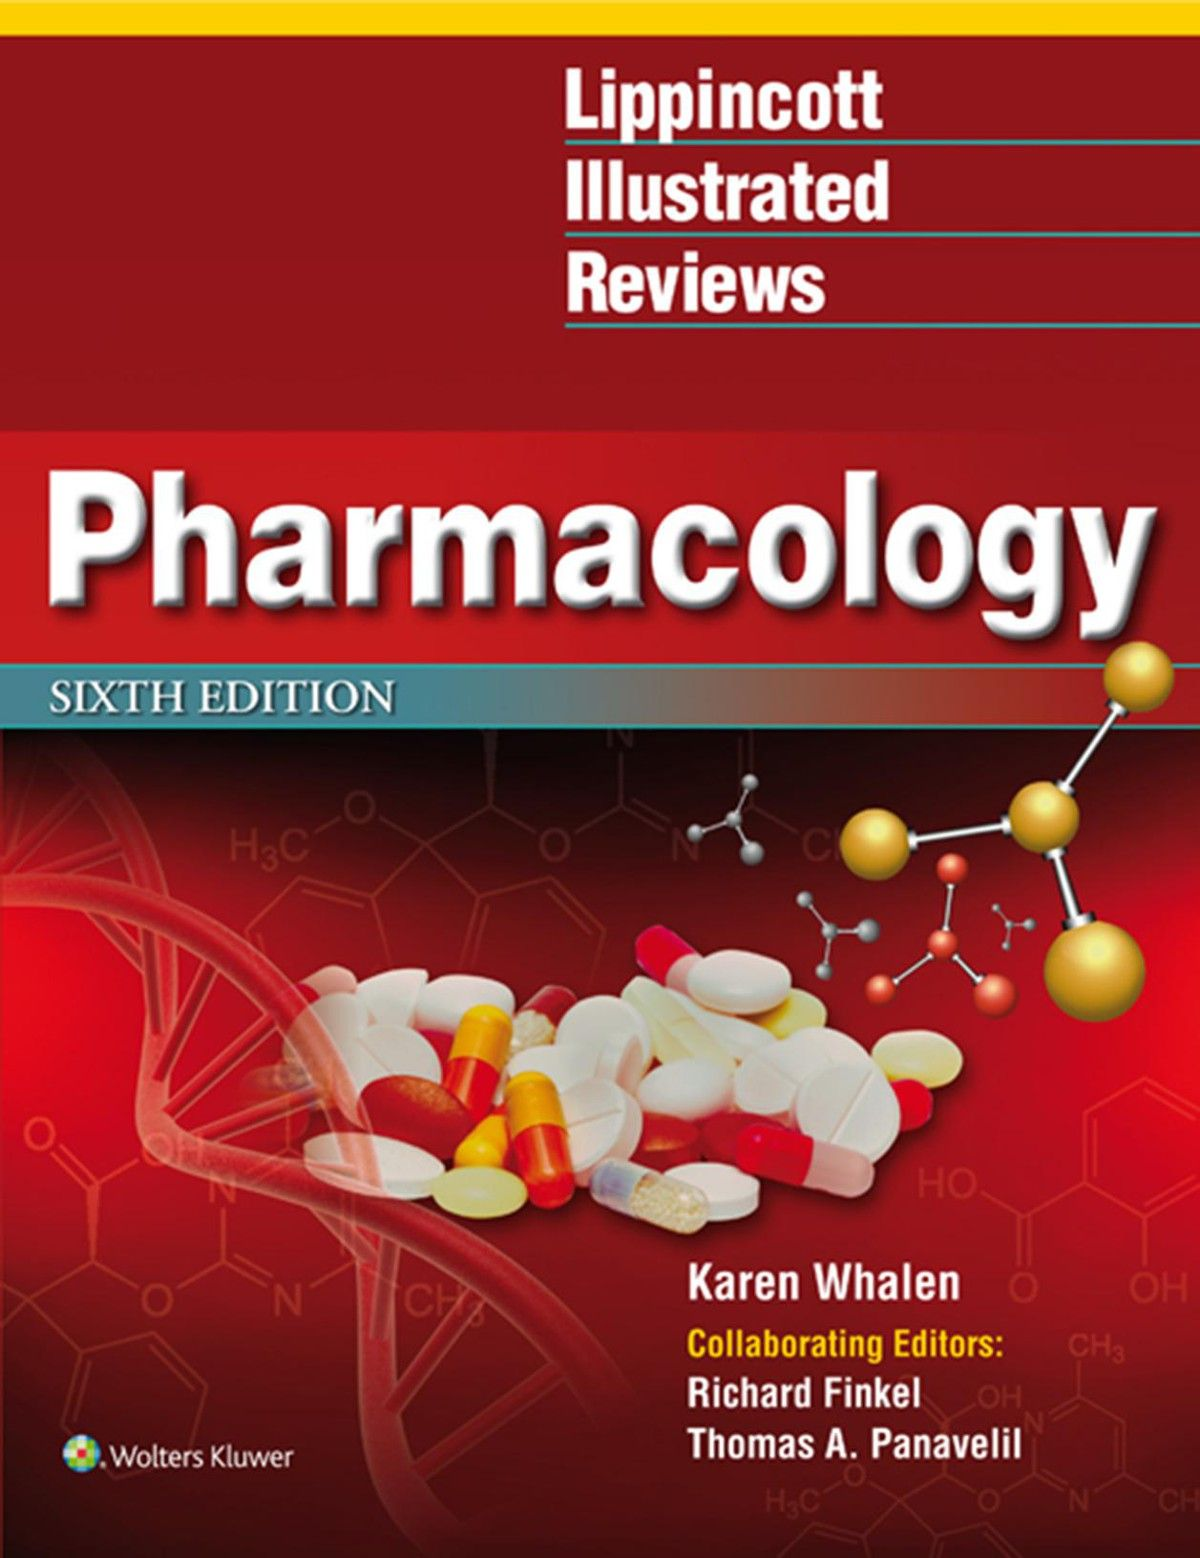 Download Lippincott Pharmacology pdf | All Medical Books | Pinterest ...